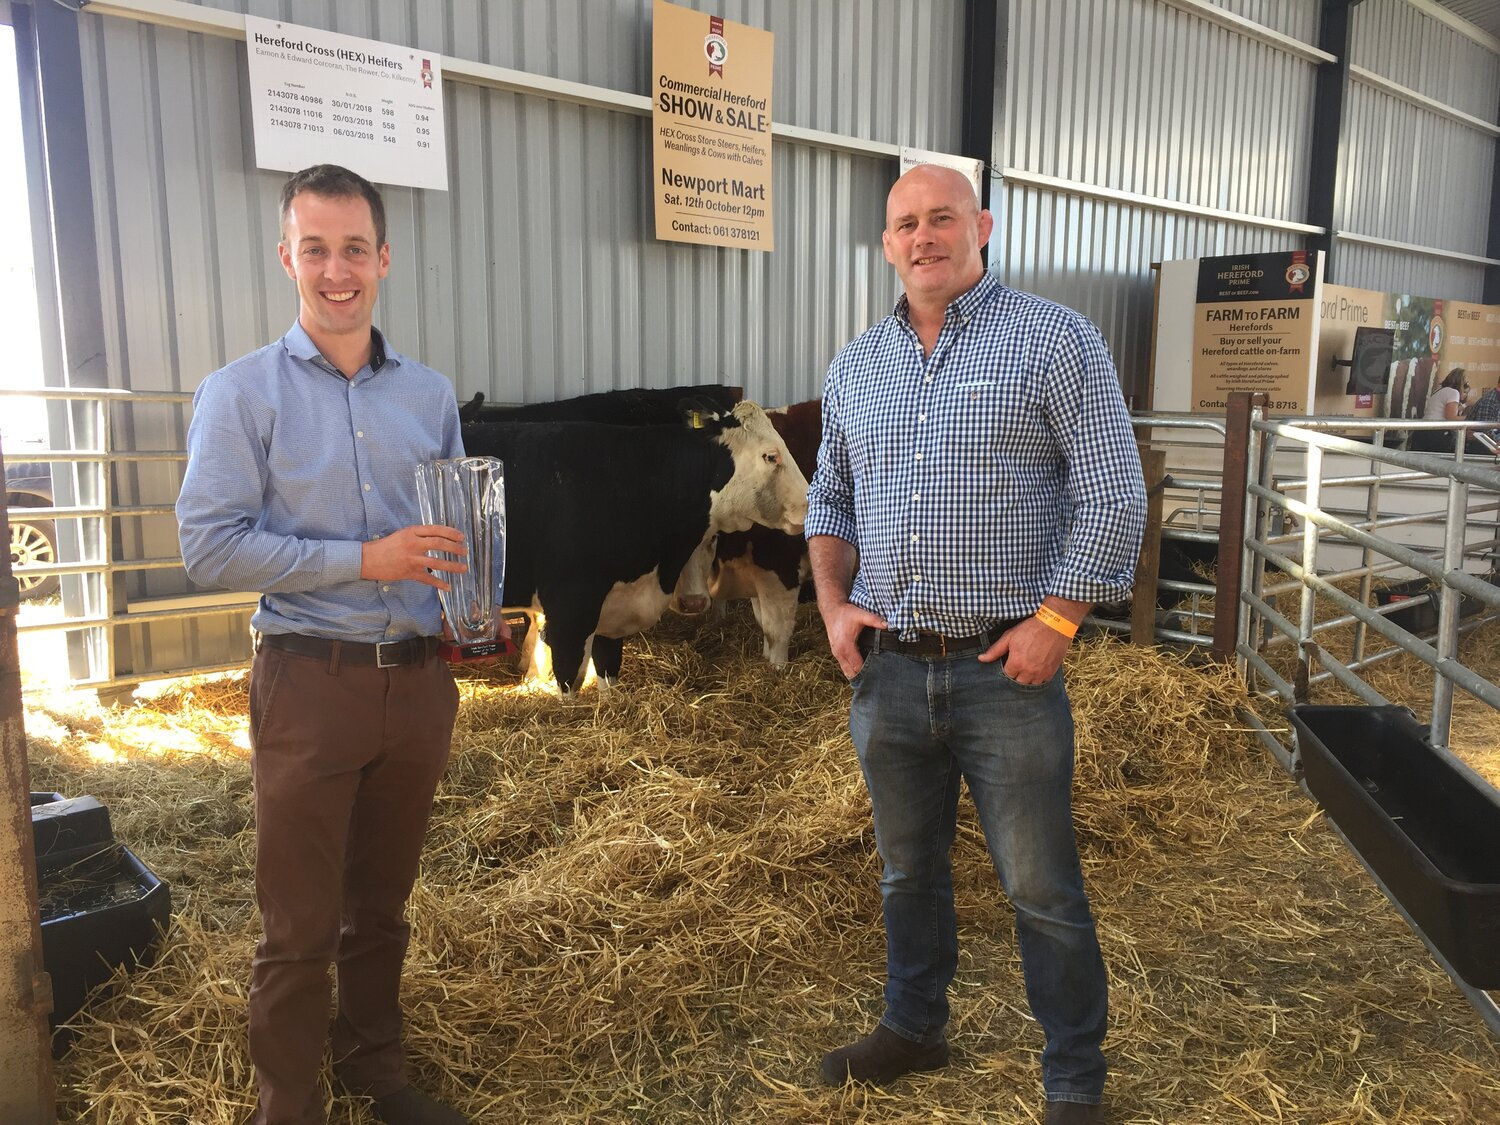 Hereford Prime farmer of the year Eamon Corcoran with Hereford Prime ambassador John Hayes at the National Ploughing Championships.